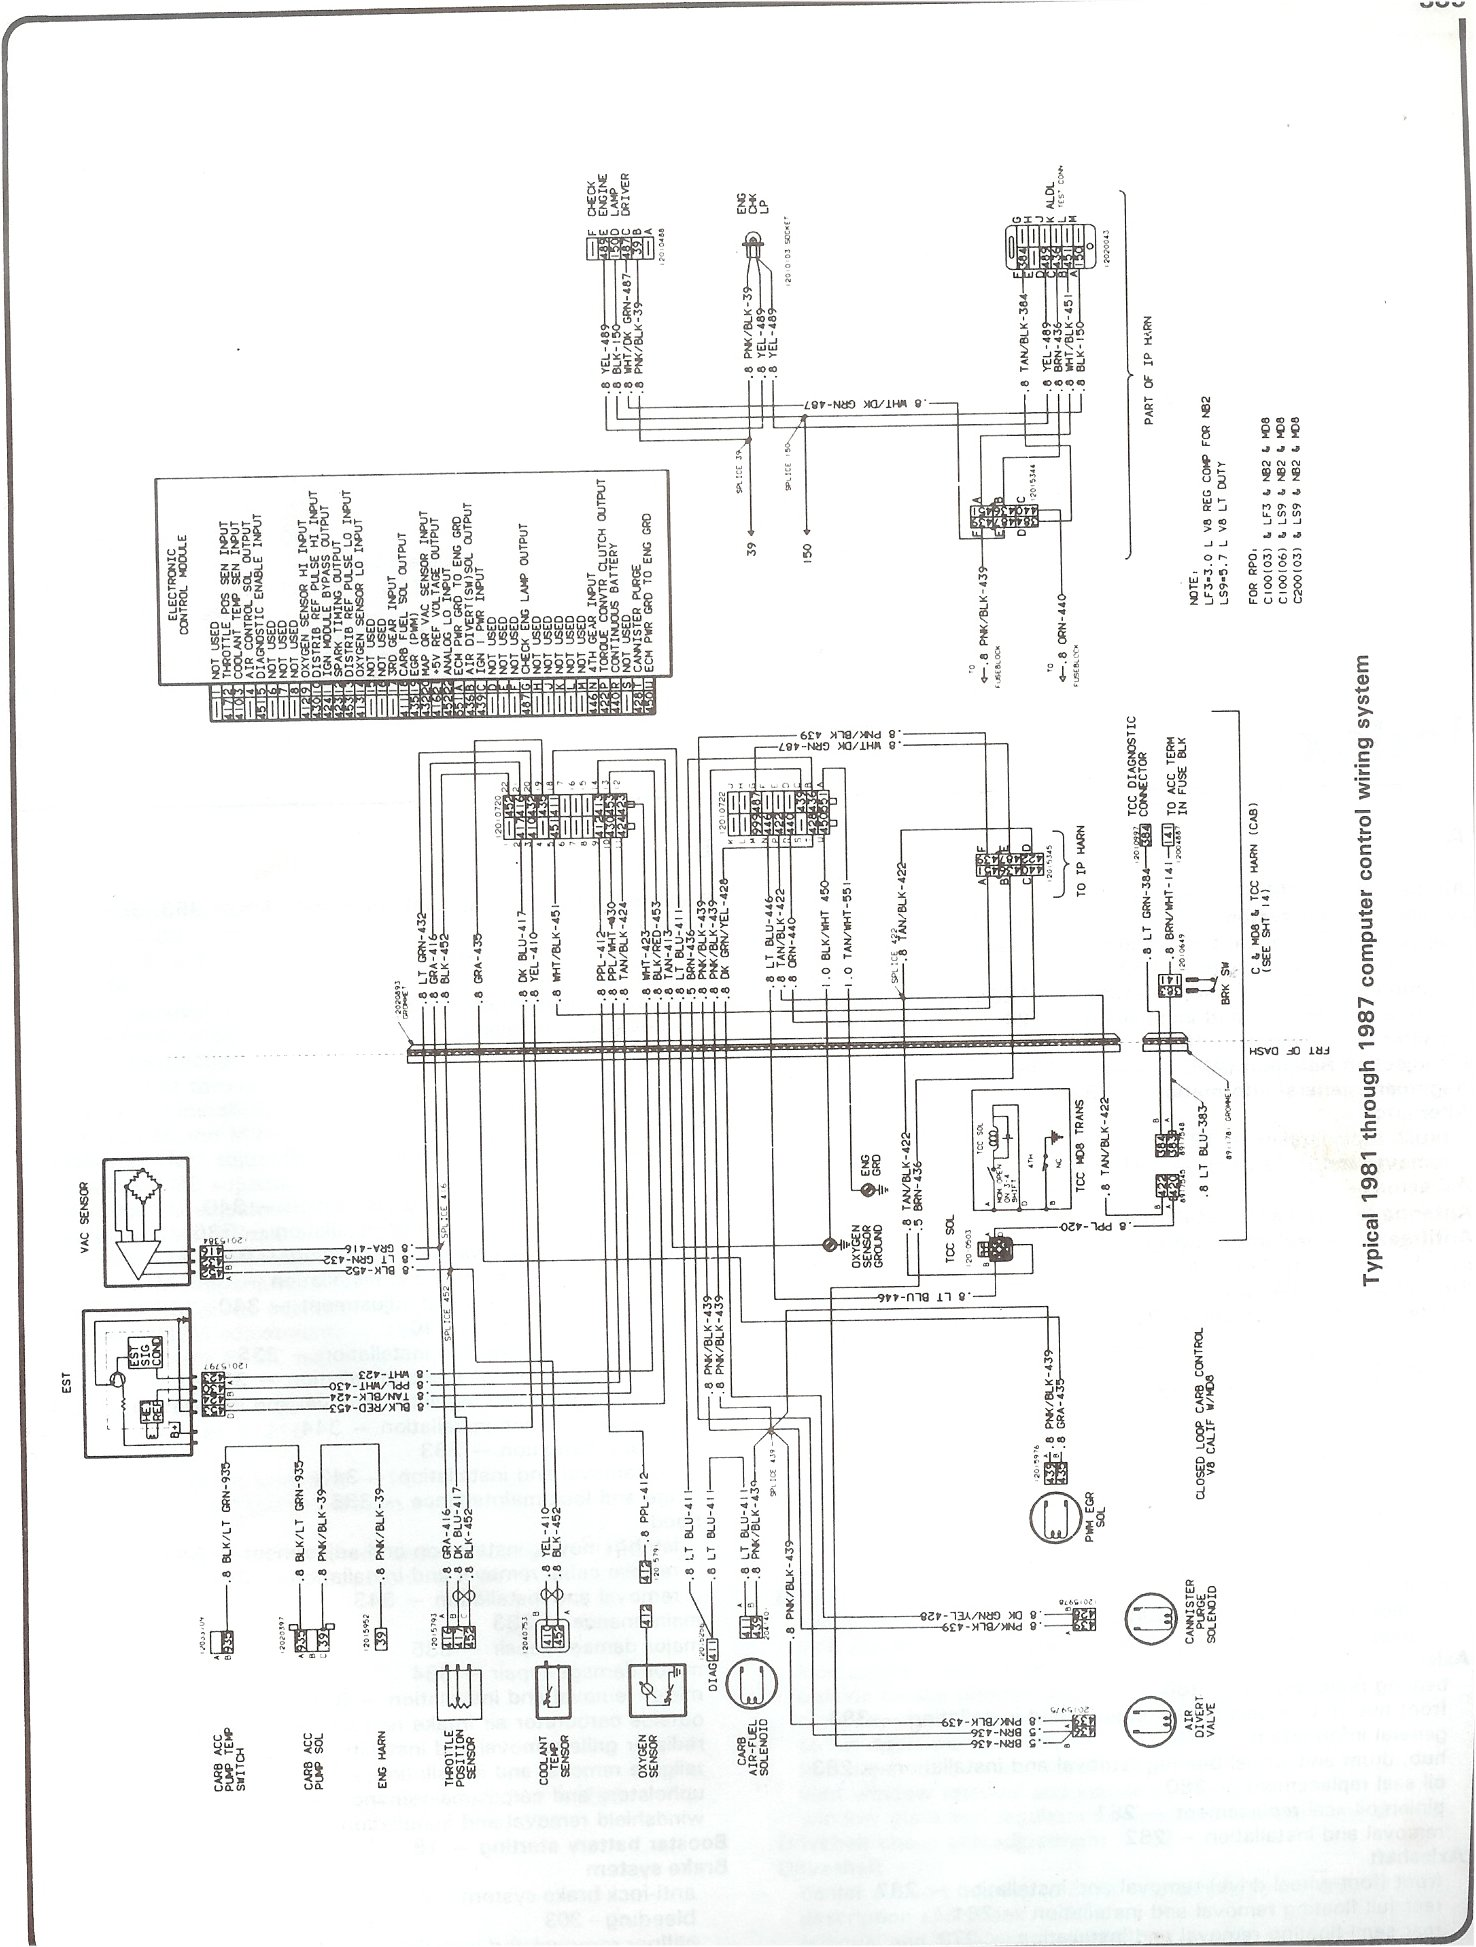 81 87_computer_control_wiring complete 73 87 wiring diagrams 85 chevy truck wiring diagram at gsmx.co